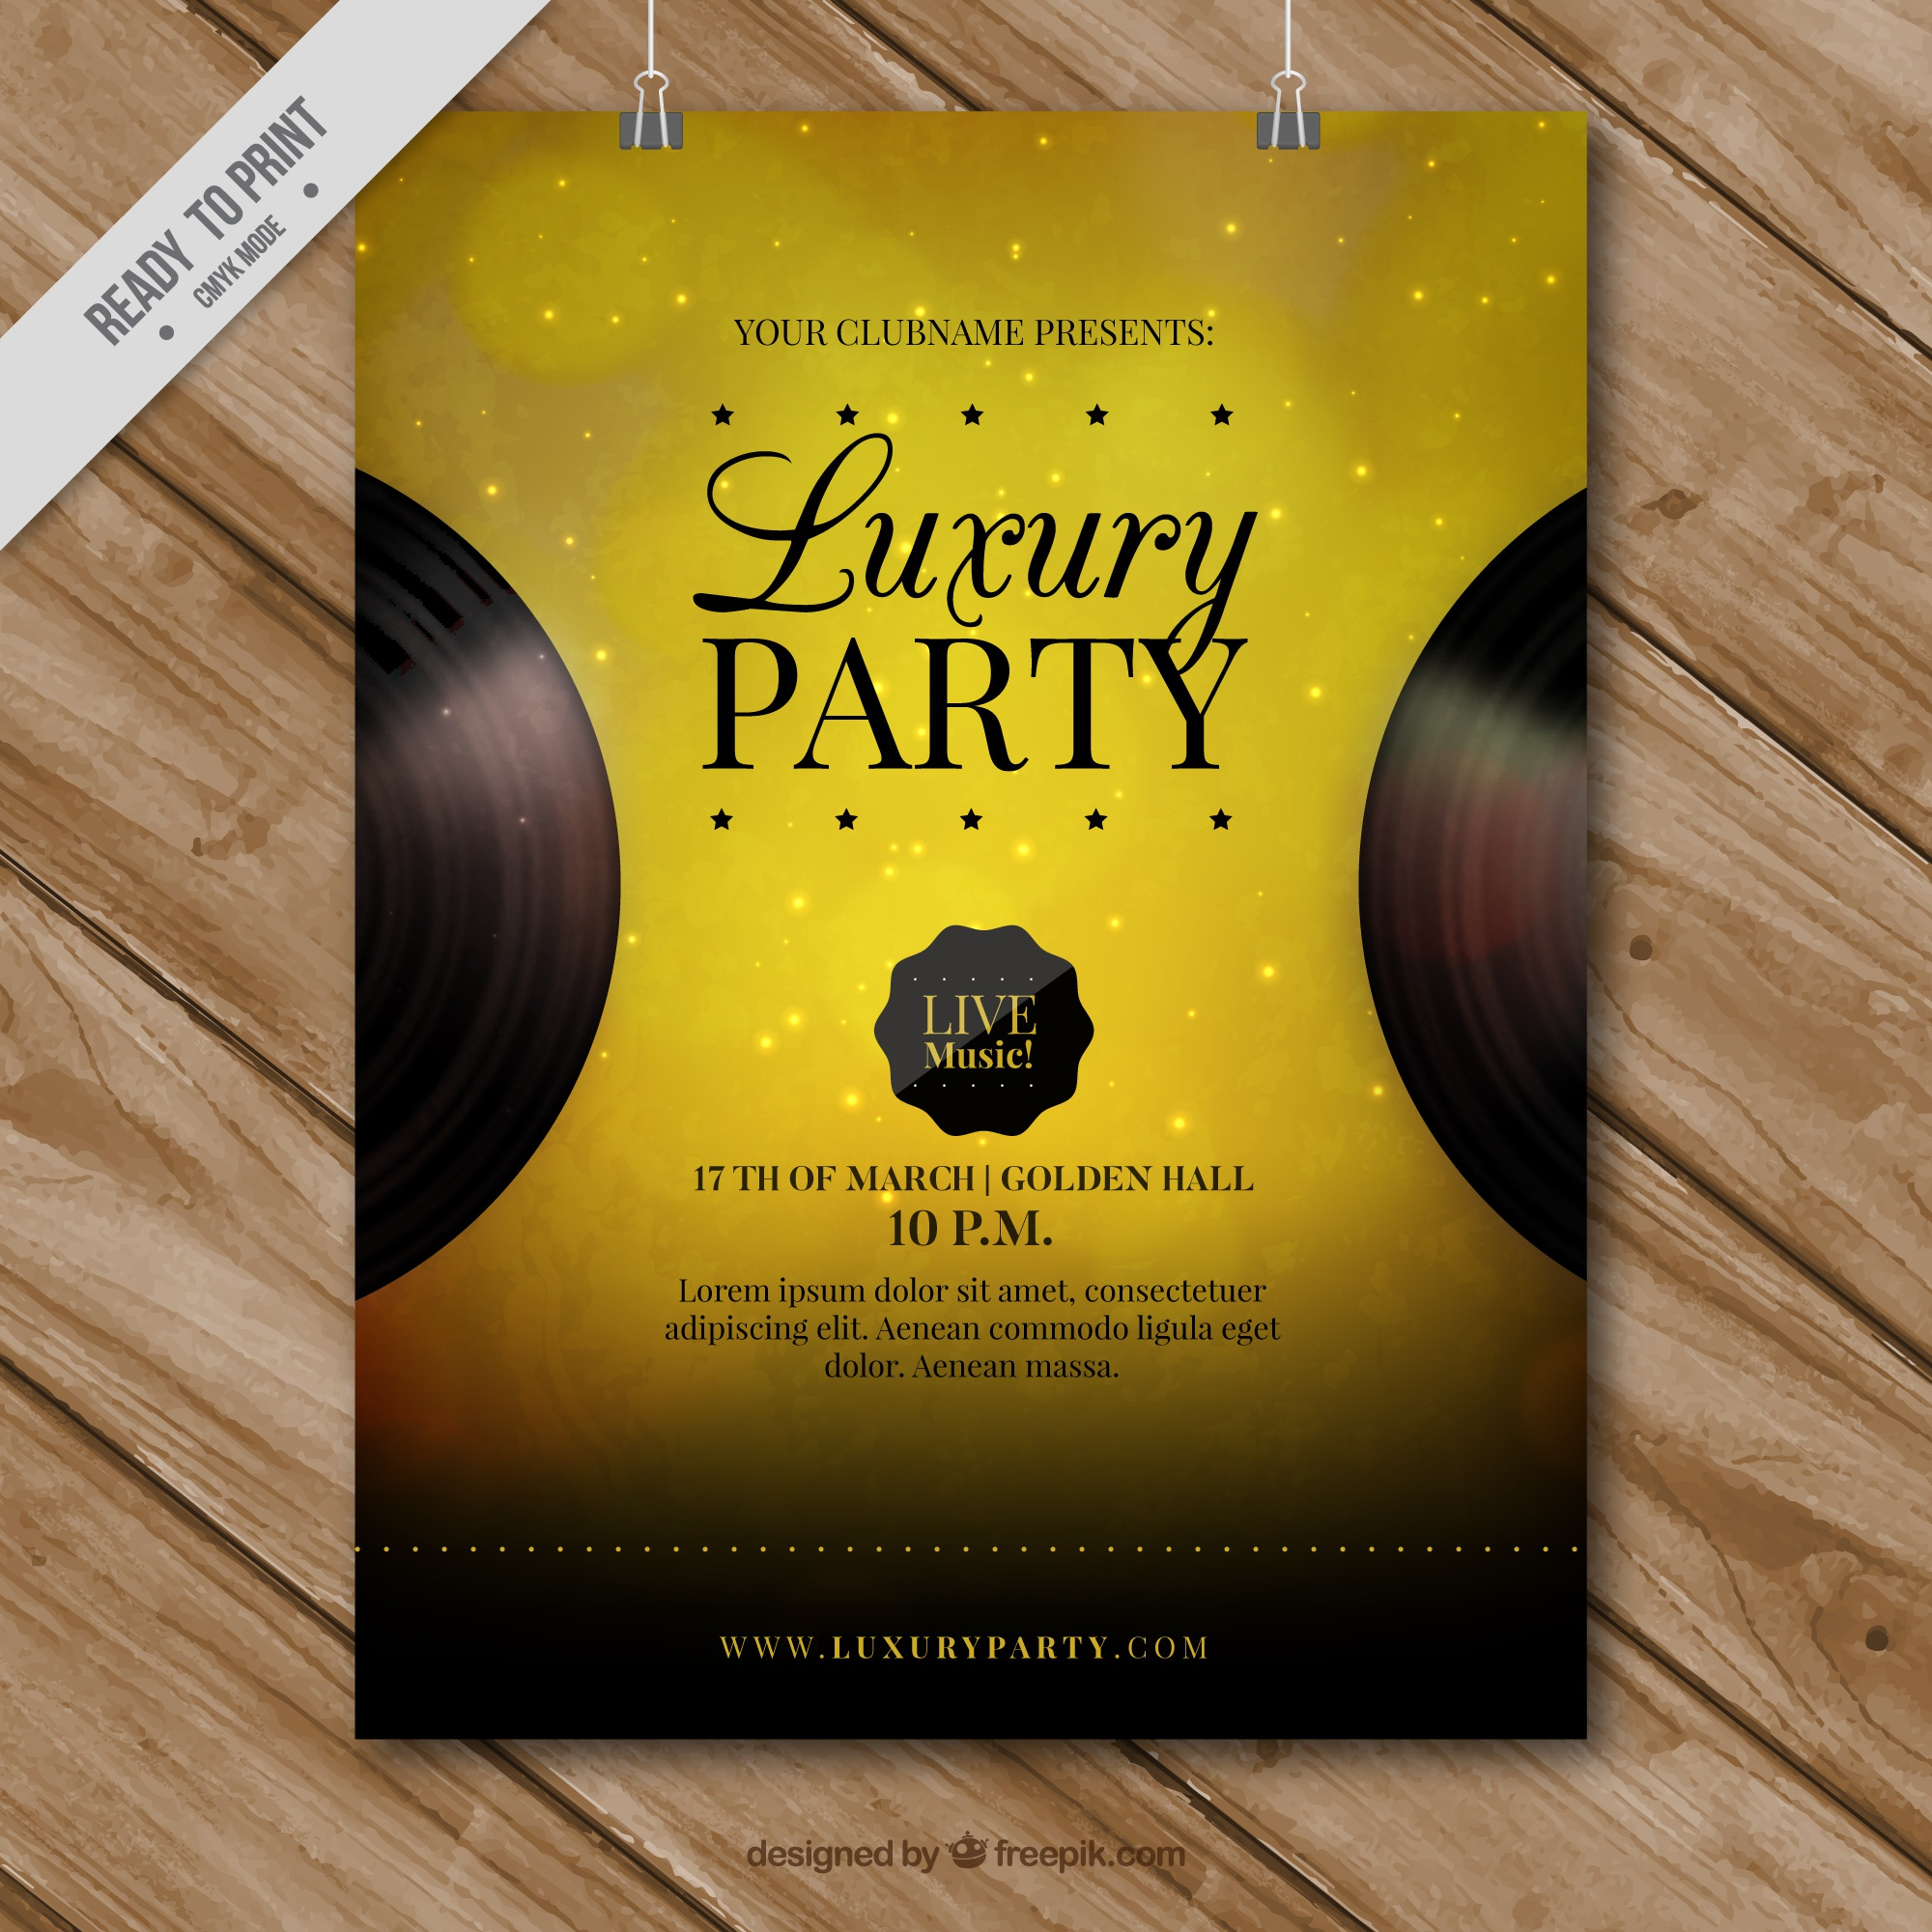 Golden party poster